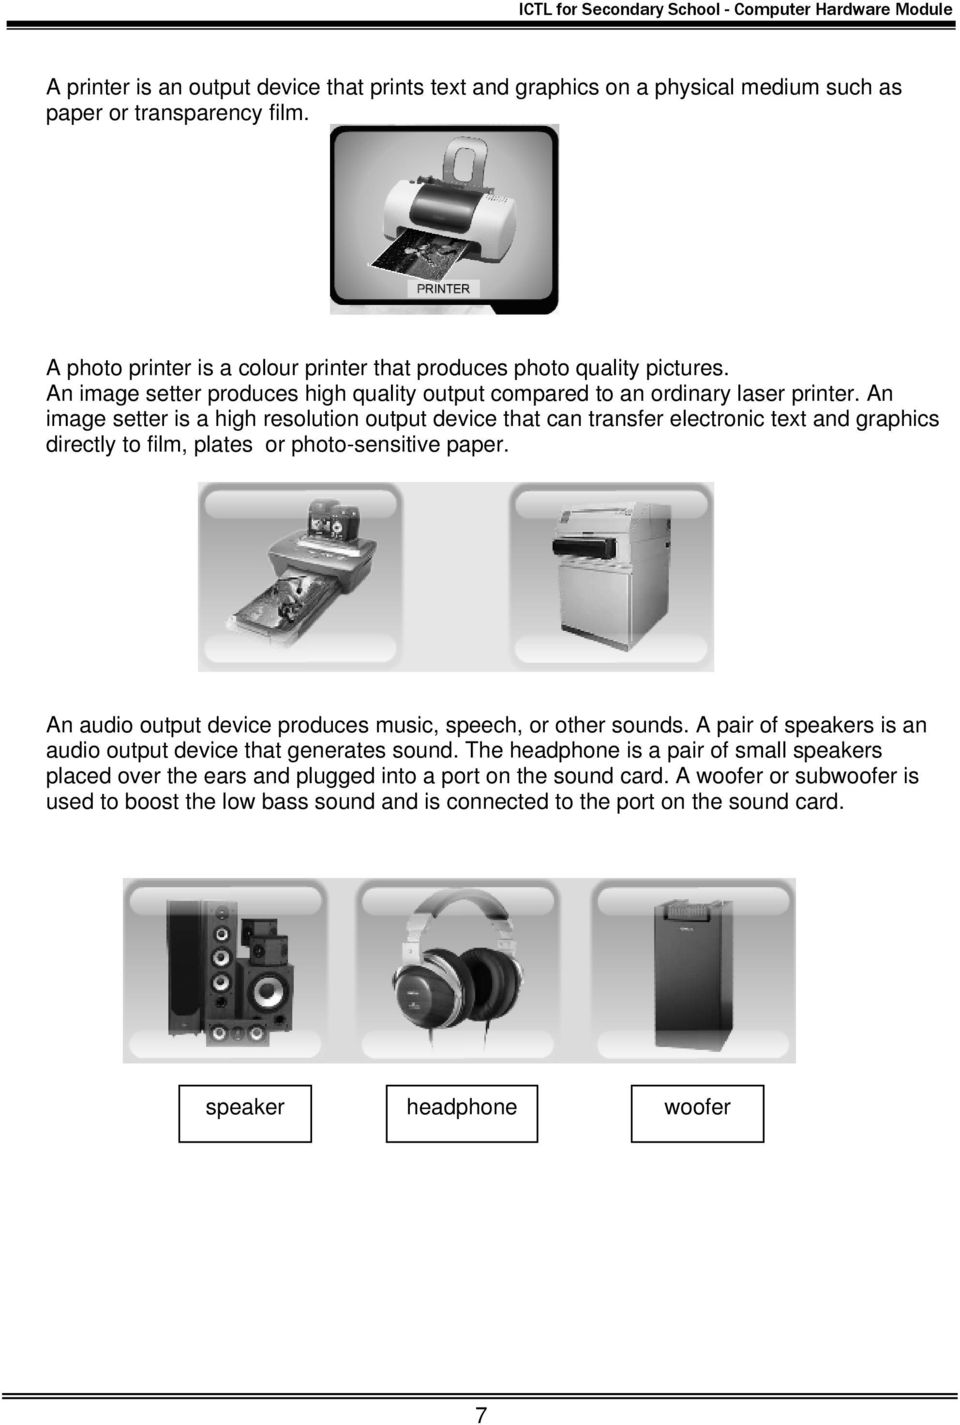 An image setter is a high resolution output device that can transfer electronic text and graphics directly to film, plates or photo-sensitive paper.